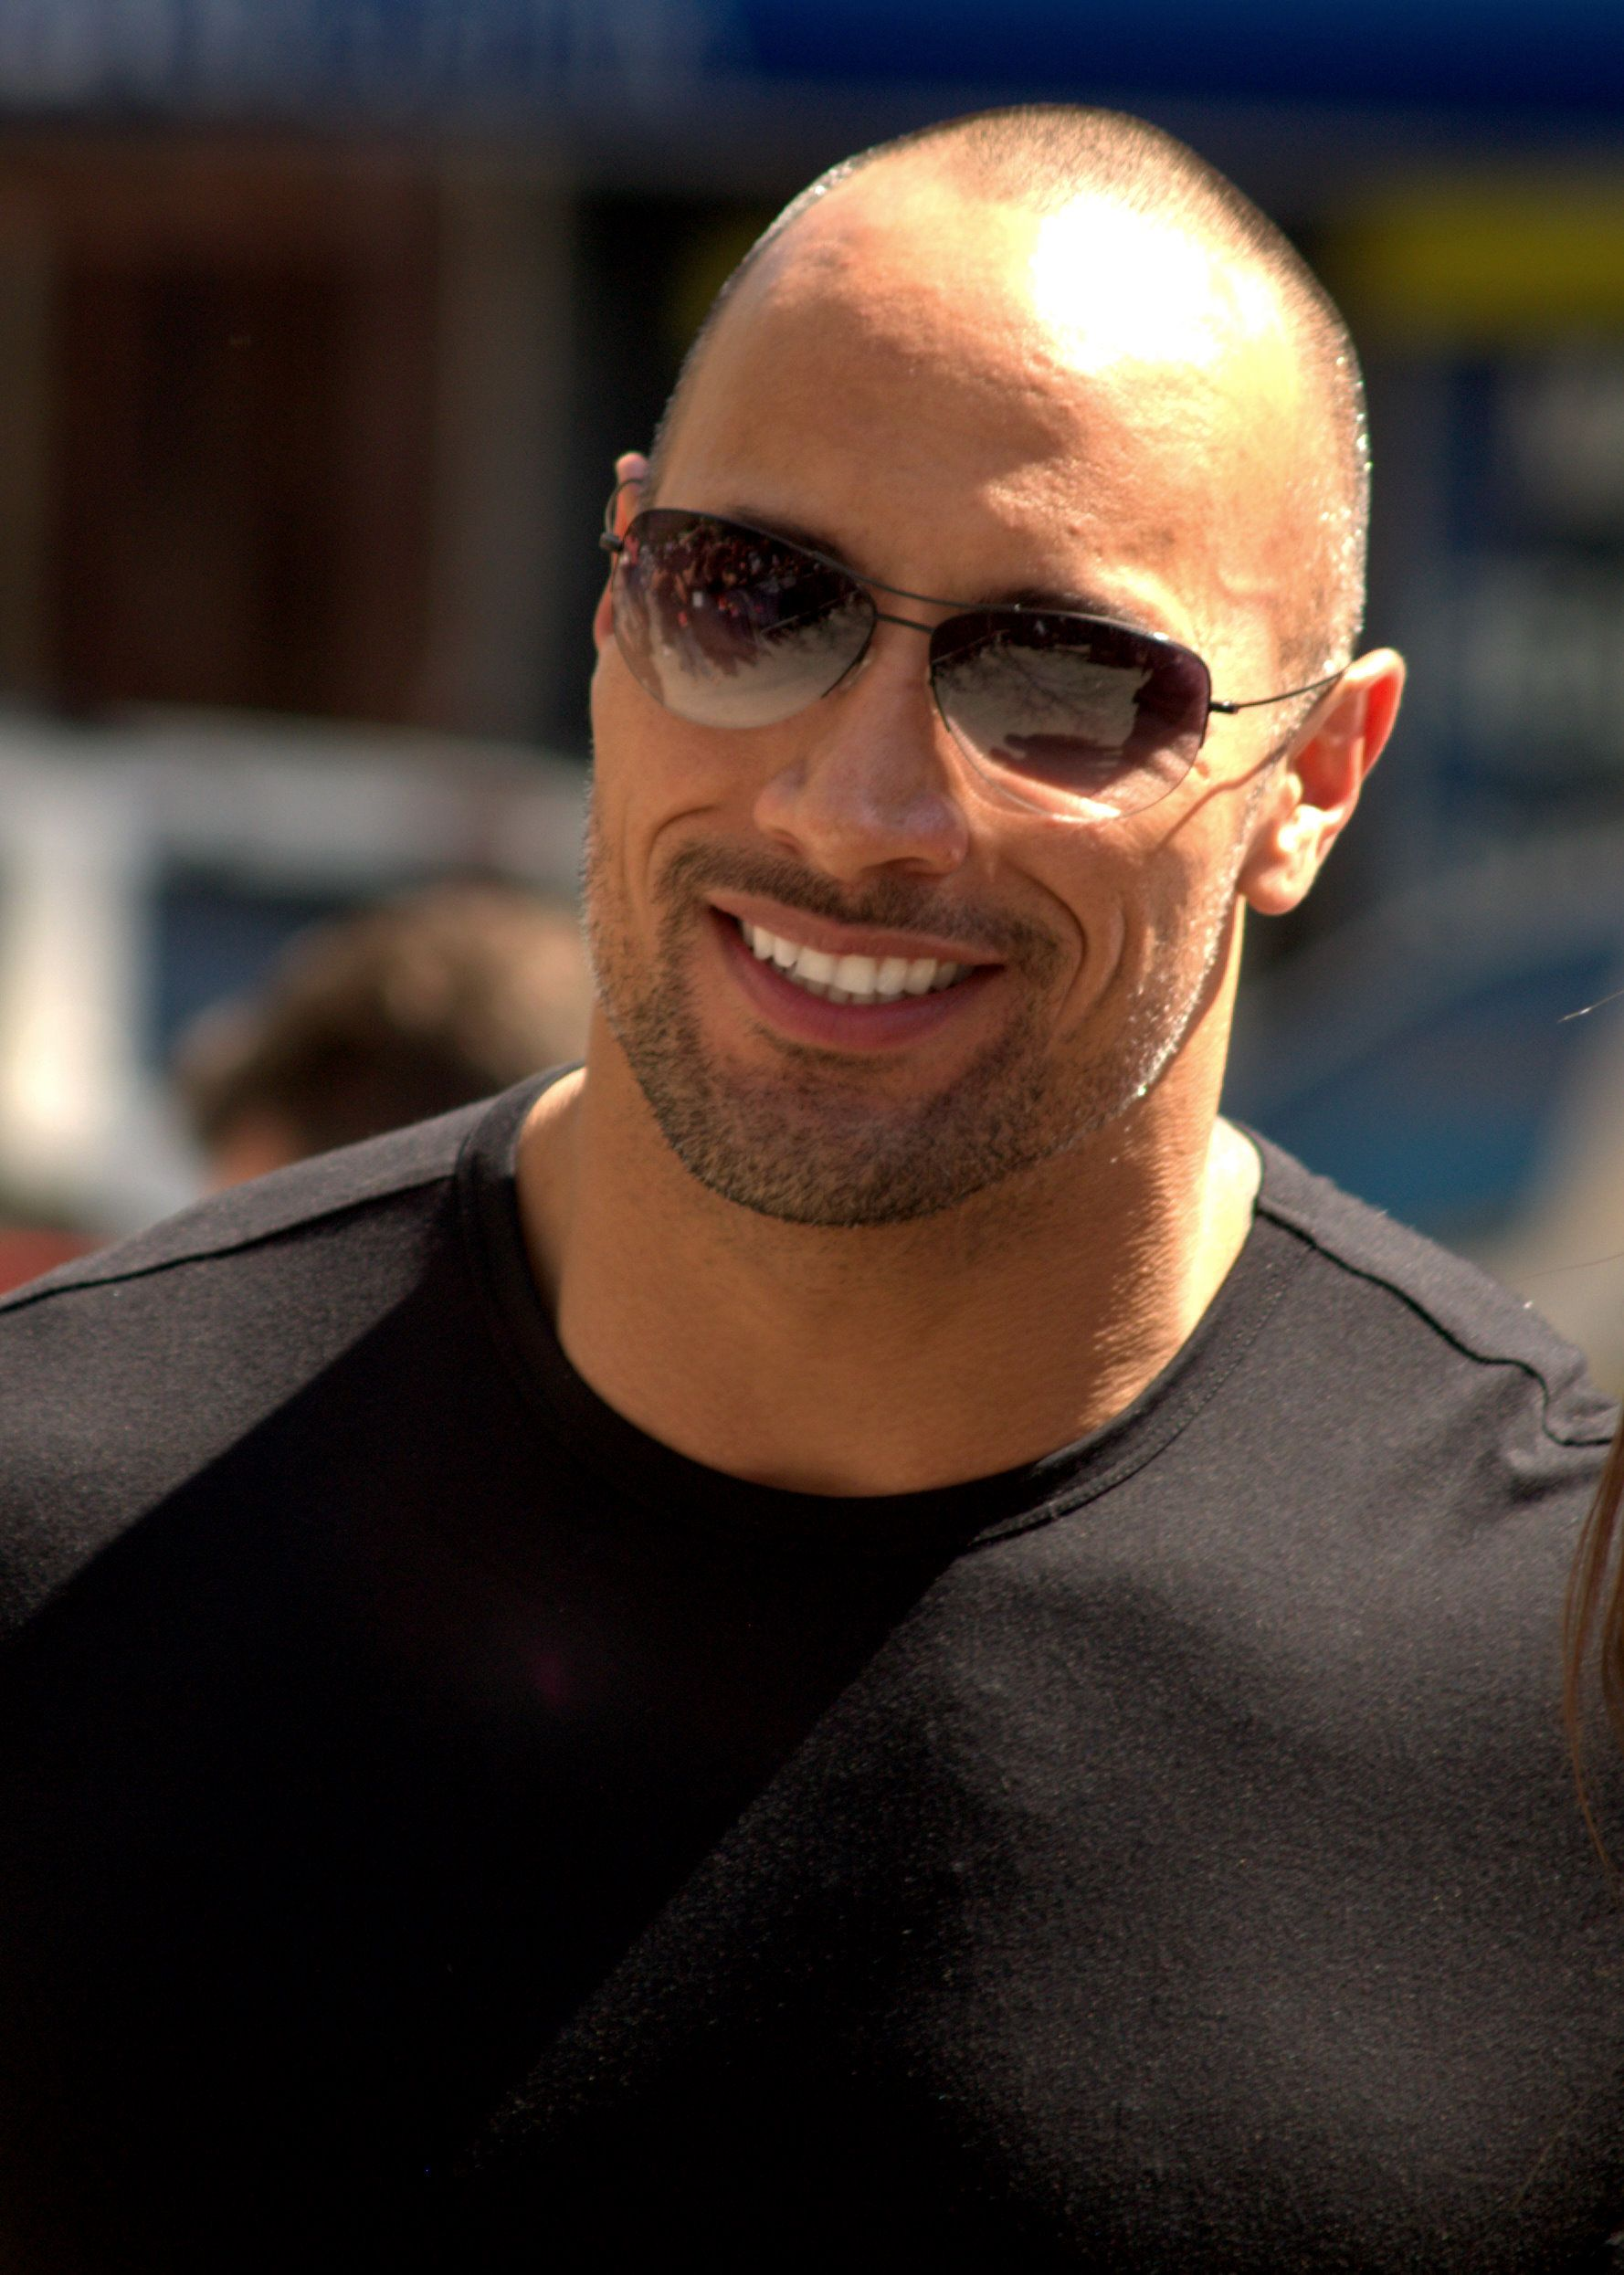 Forum on this topic: Dwayne The Rock Johnson Shared the Sweetest , dwayne-the-rock-johnson-shared-the-sweetest/